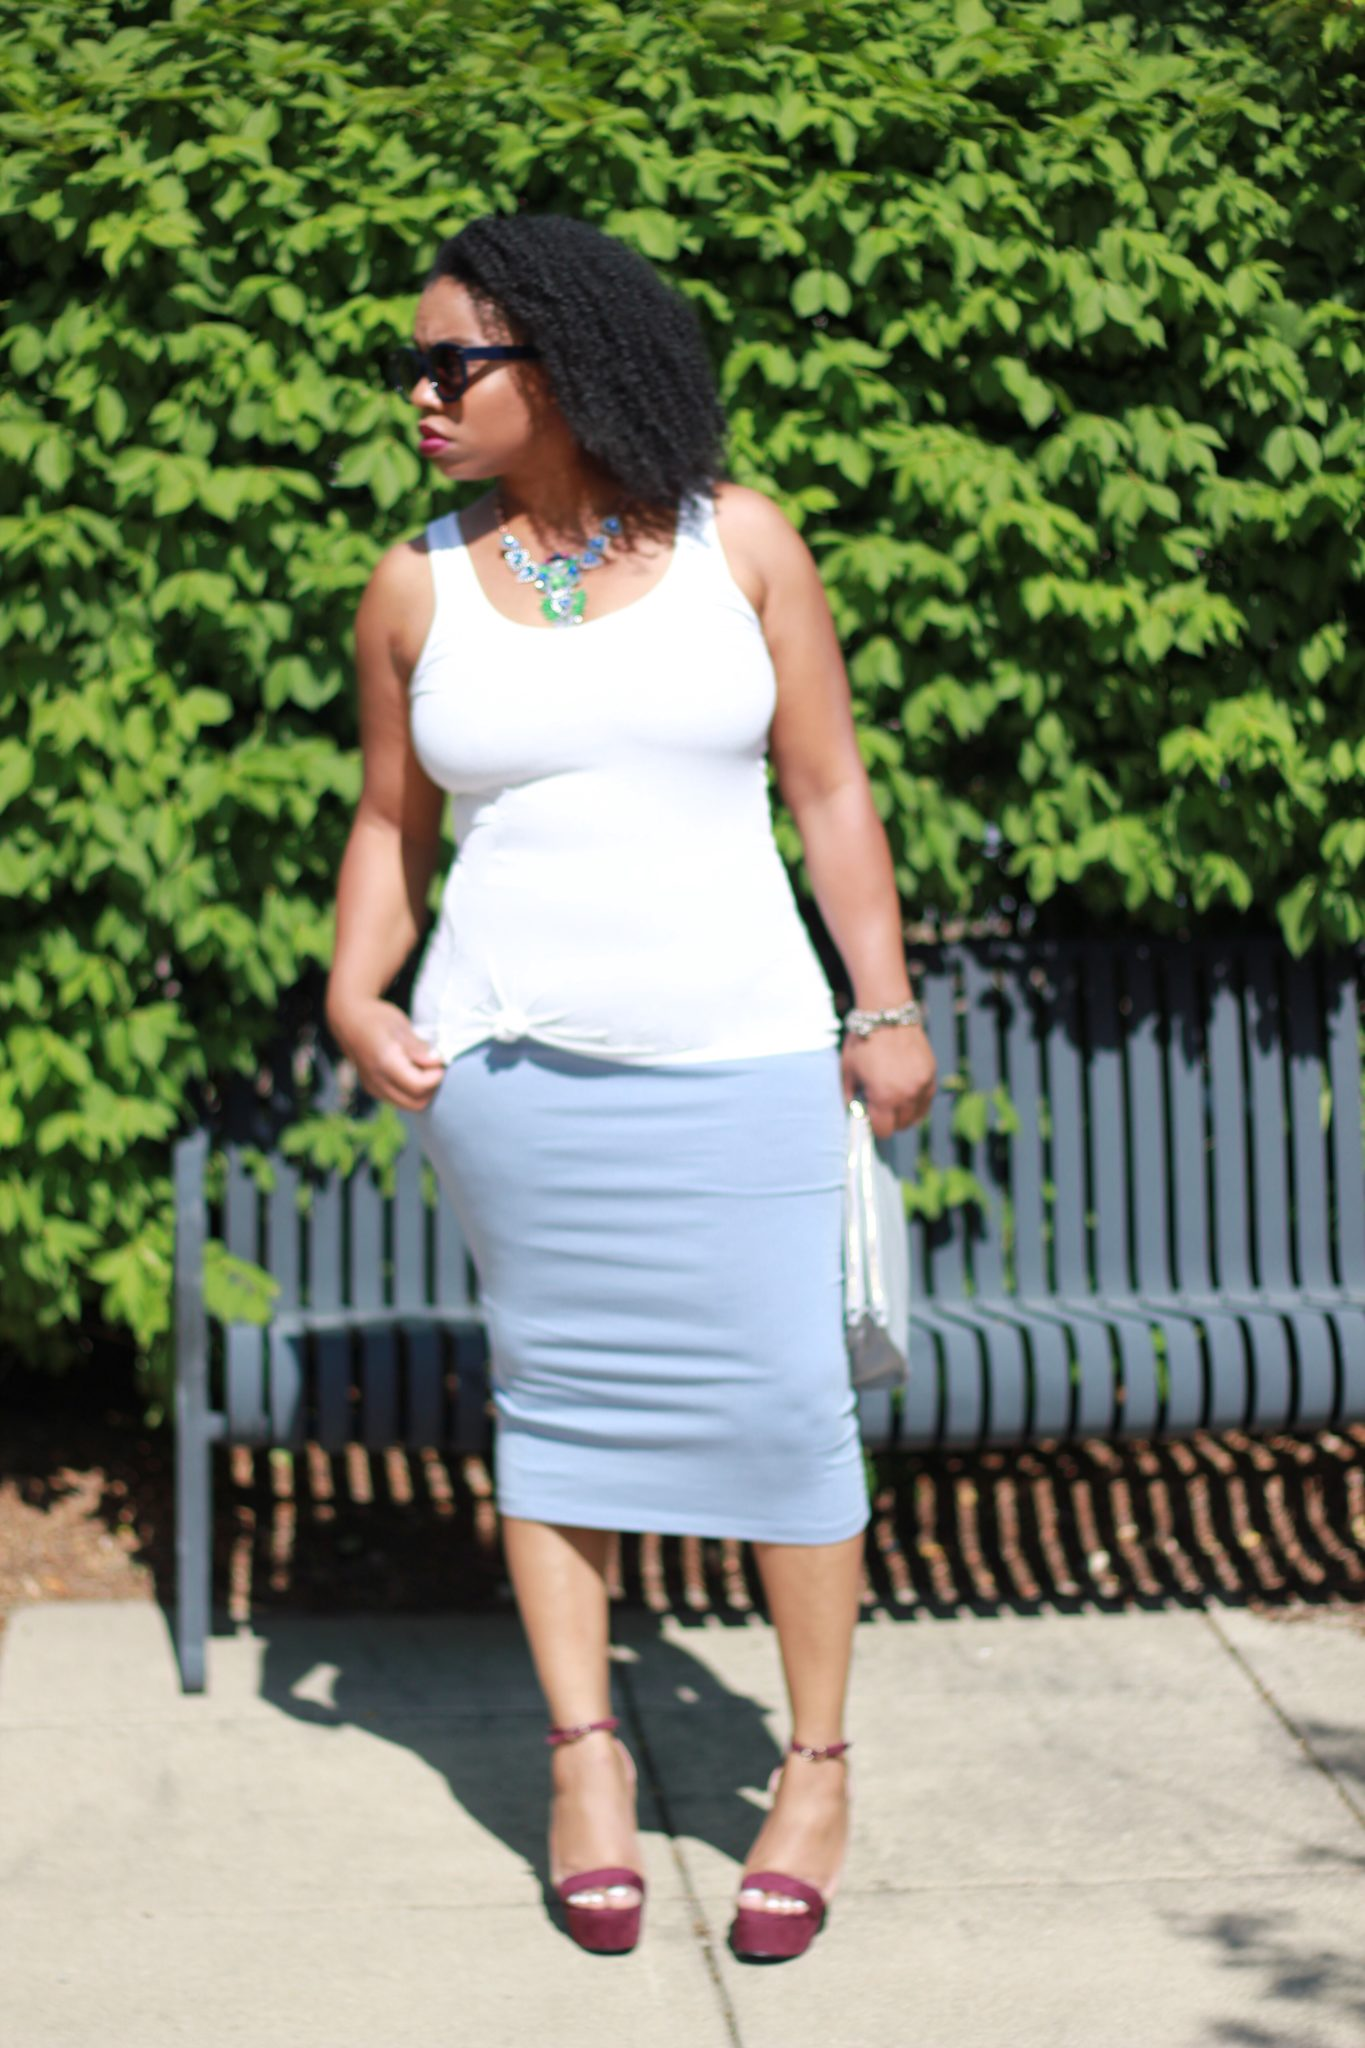 publish_snapshot-39 Styling The White Tank (Look #1) Uncategorized